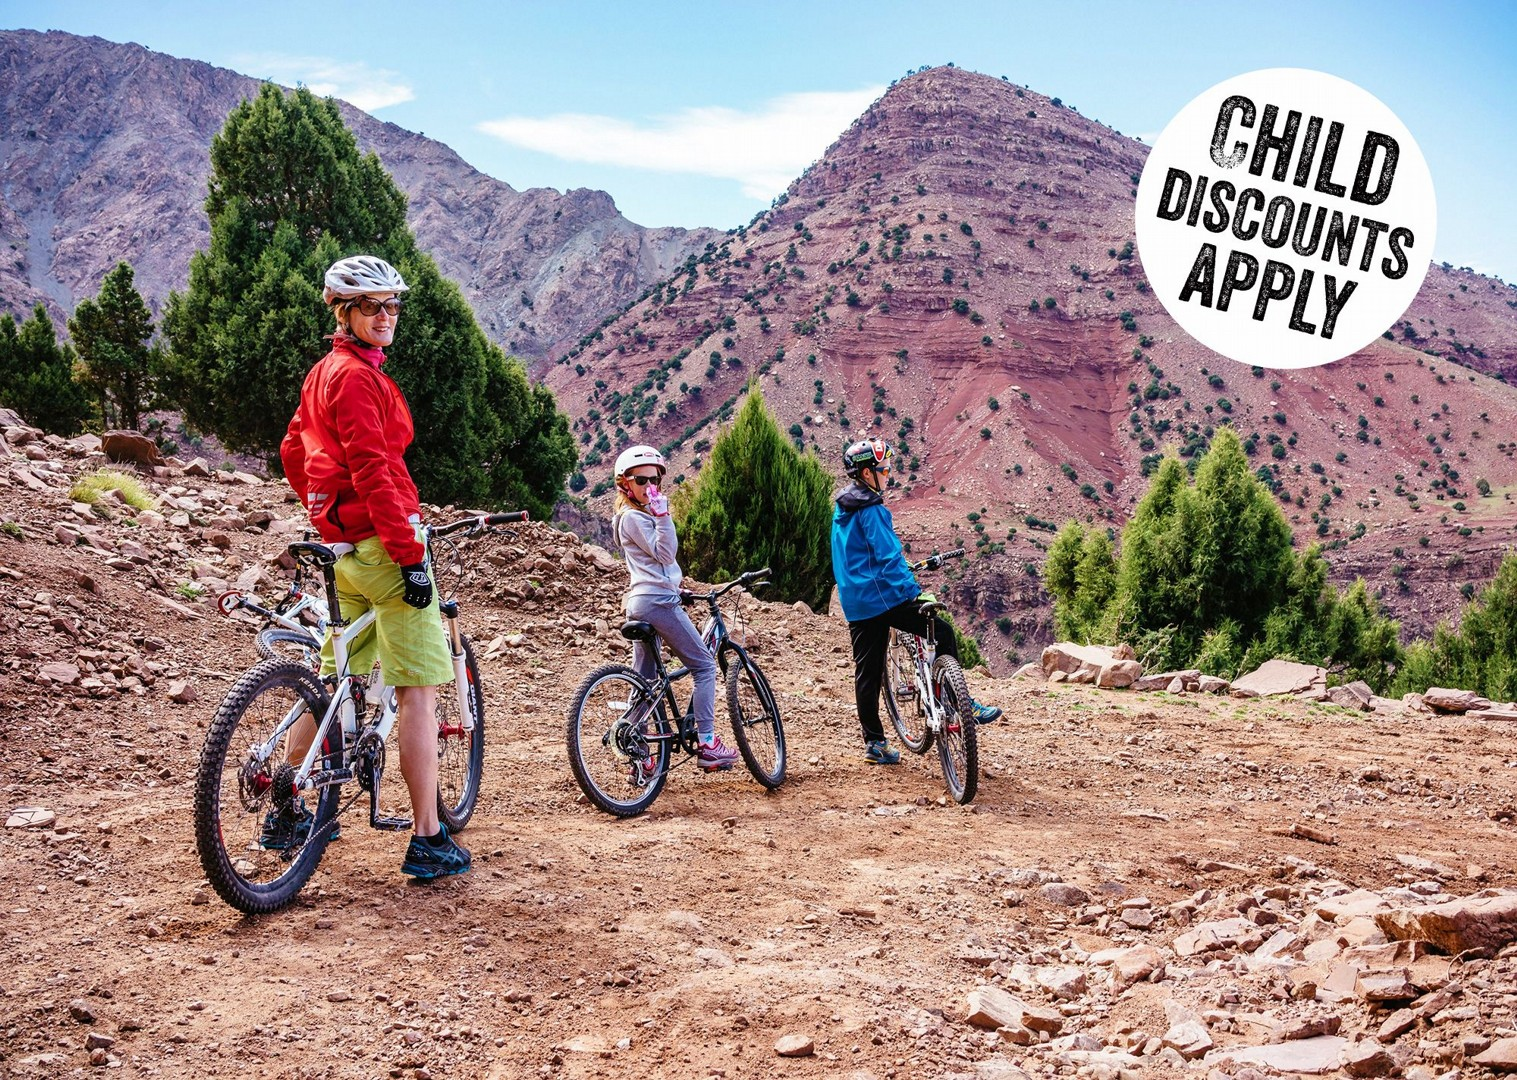 Desert, Mountains and Coast.jpg - Morocco - Desert, Mountains and Coast - Family Cycling